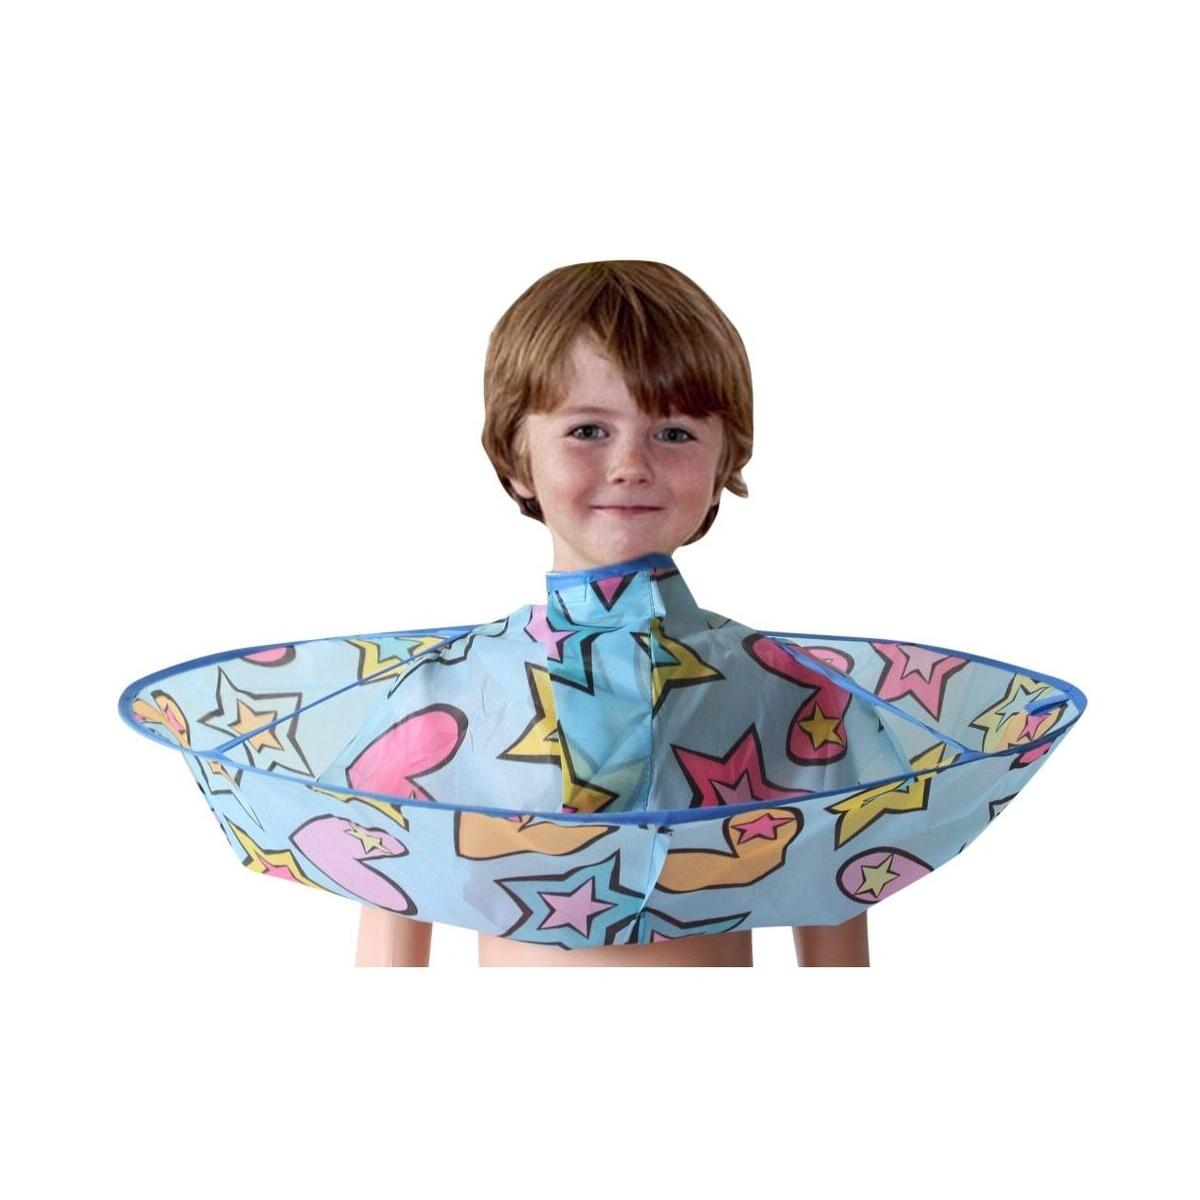 Kids Boy Hair Cutting Cape Gown Hairdresser Barber Apron Hairdressing Children